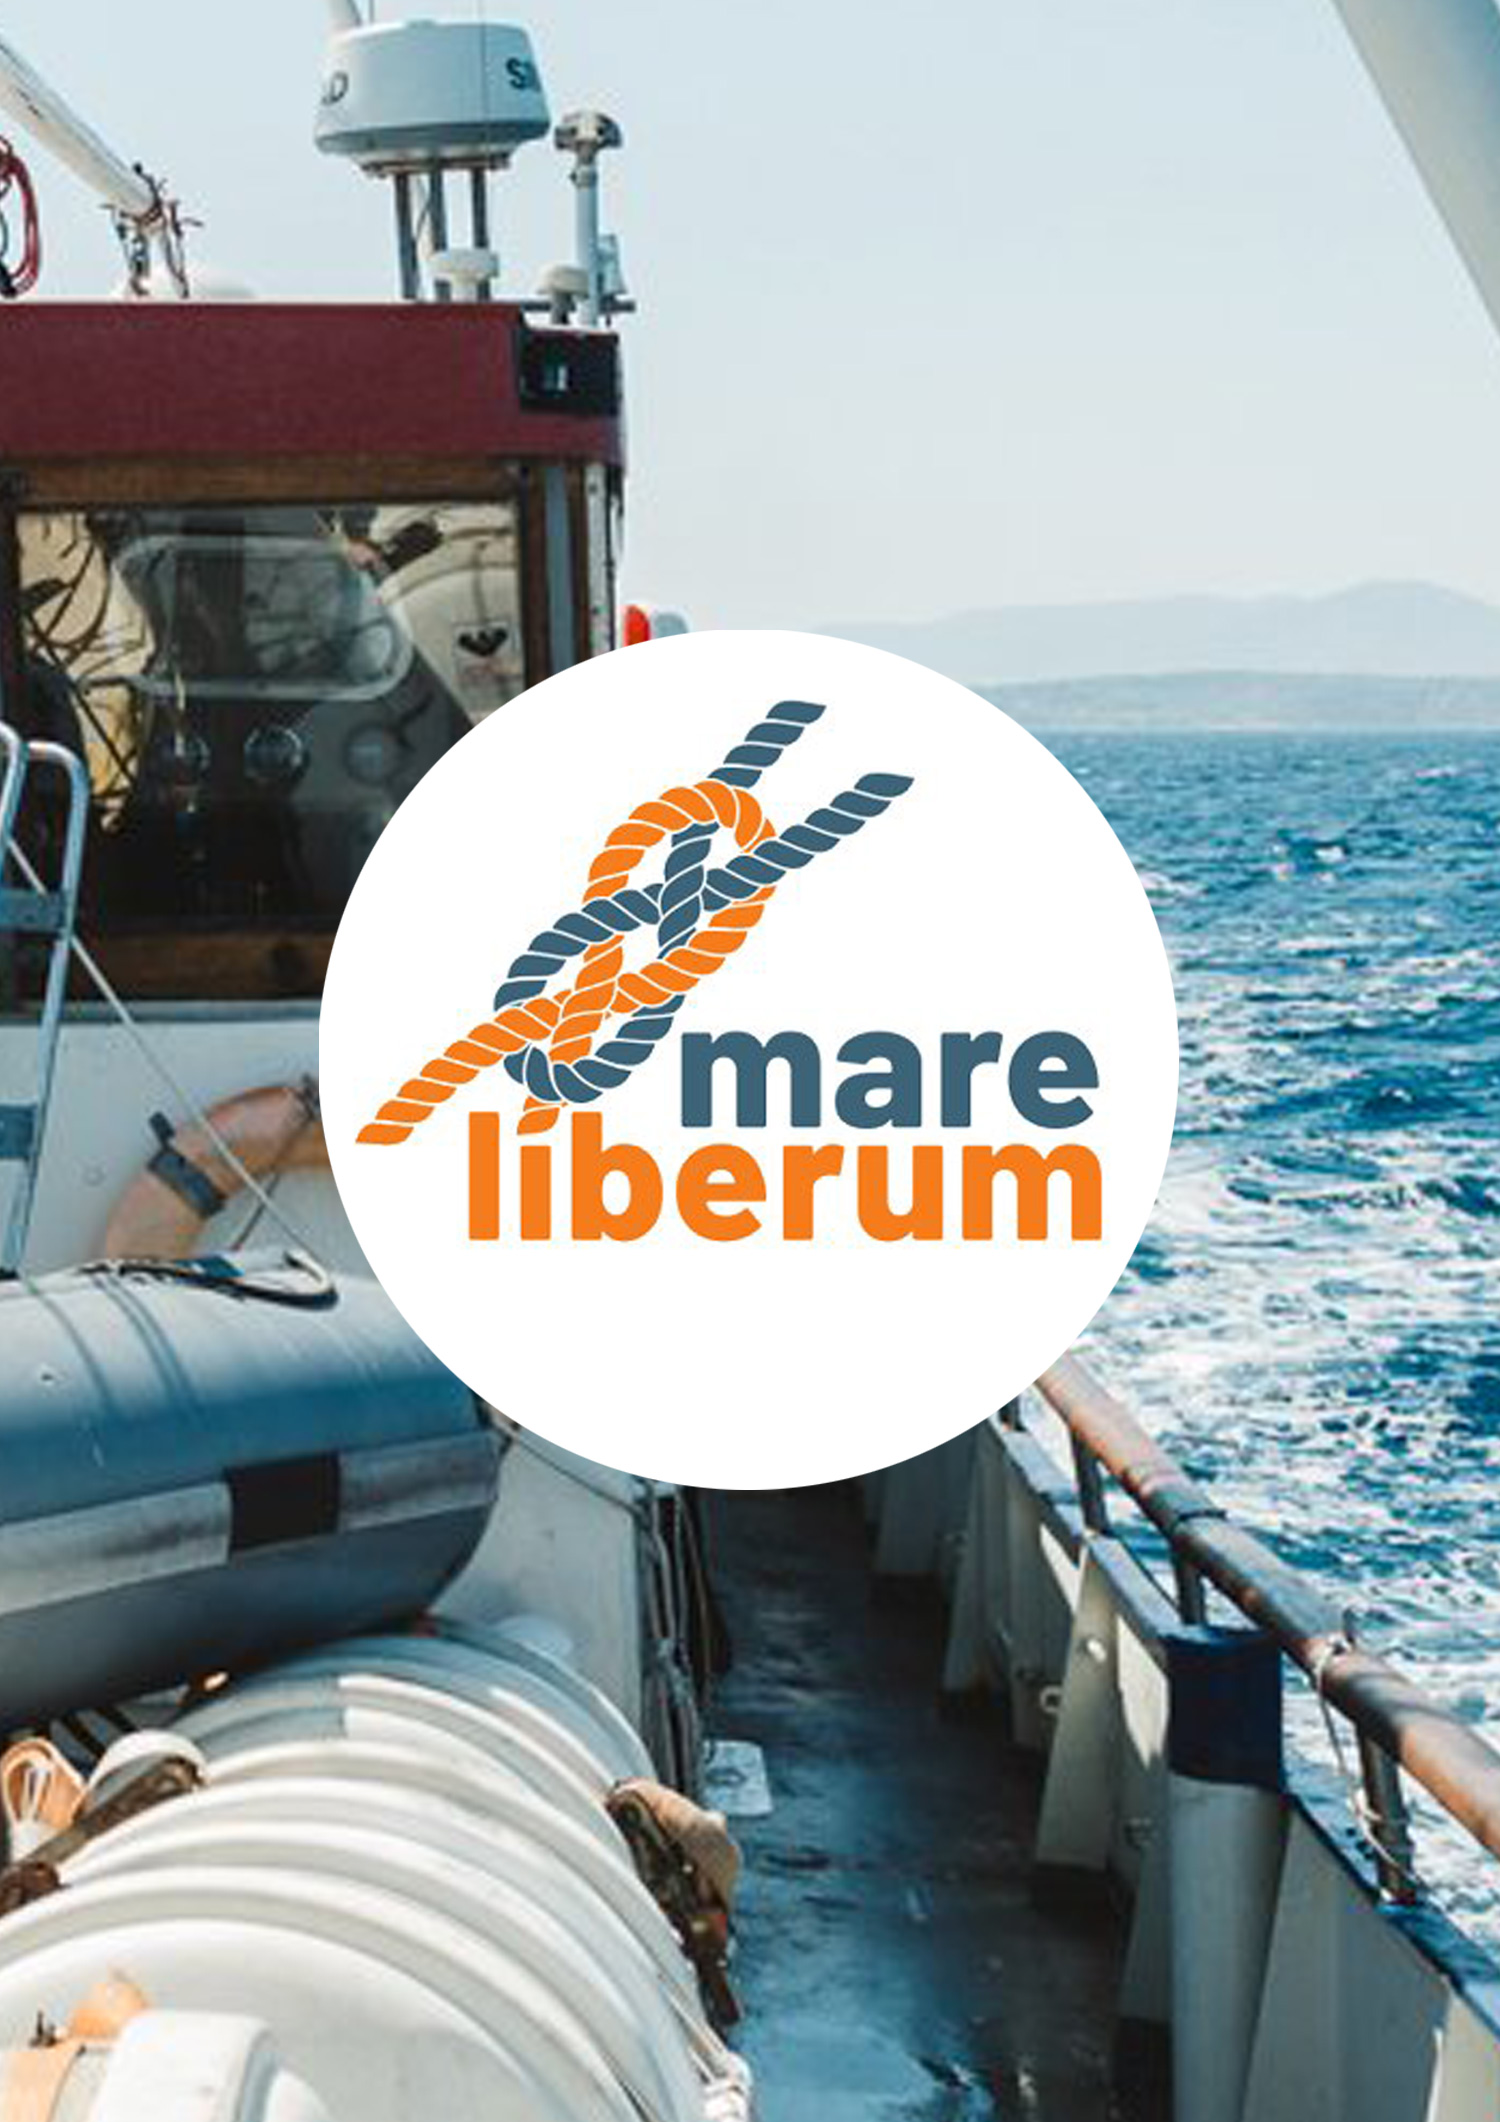 Refugee Rights Europe Calling For Change Pushbacks Mare Liberum